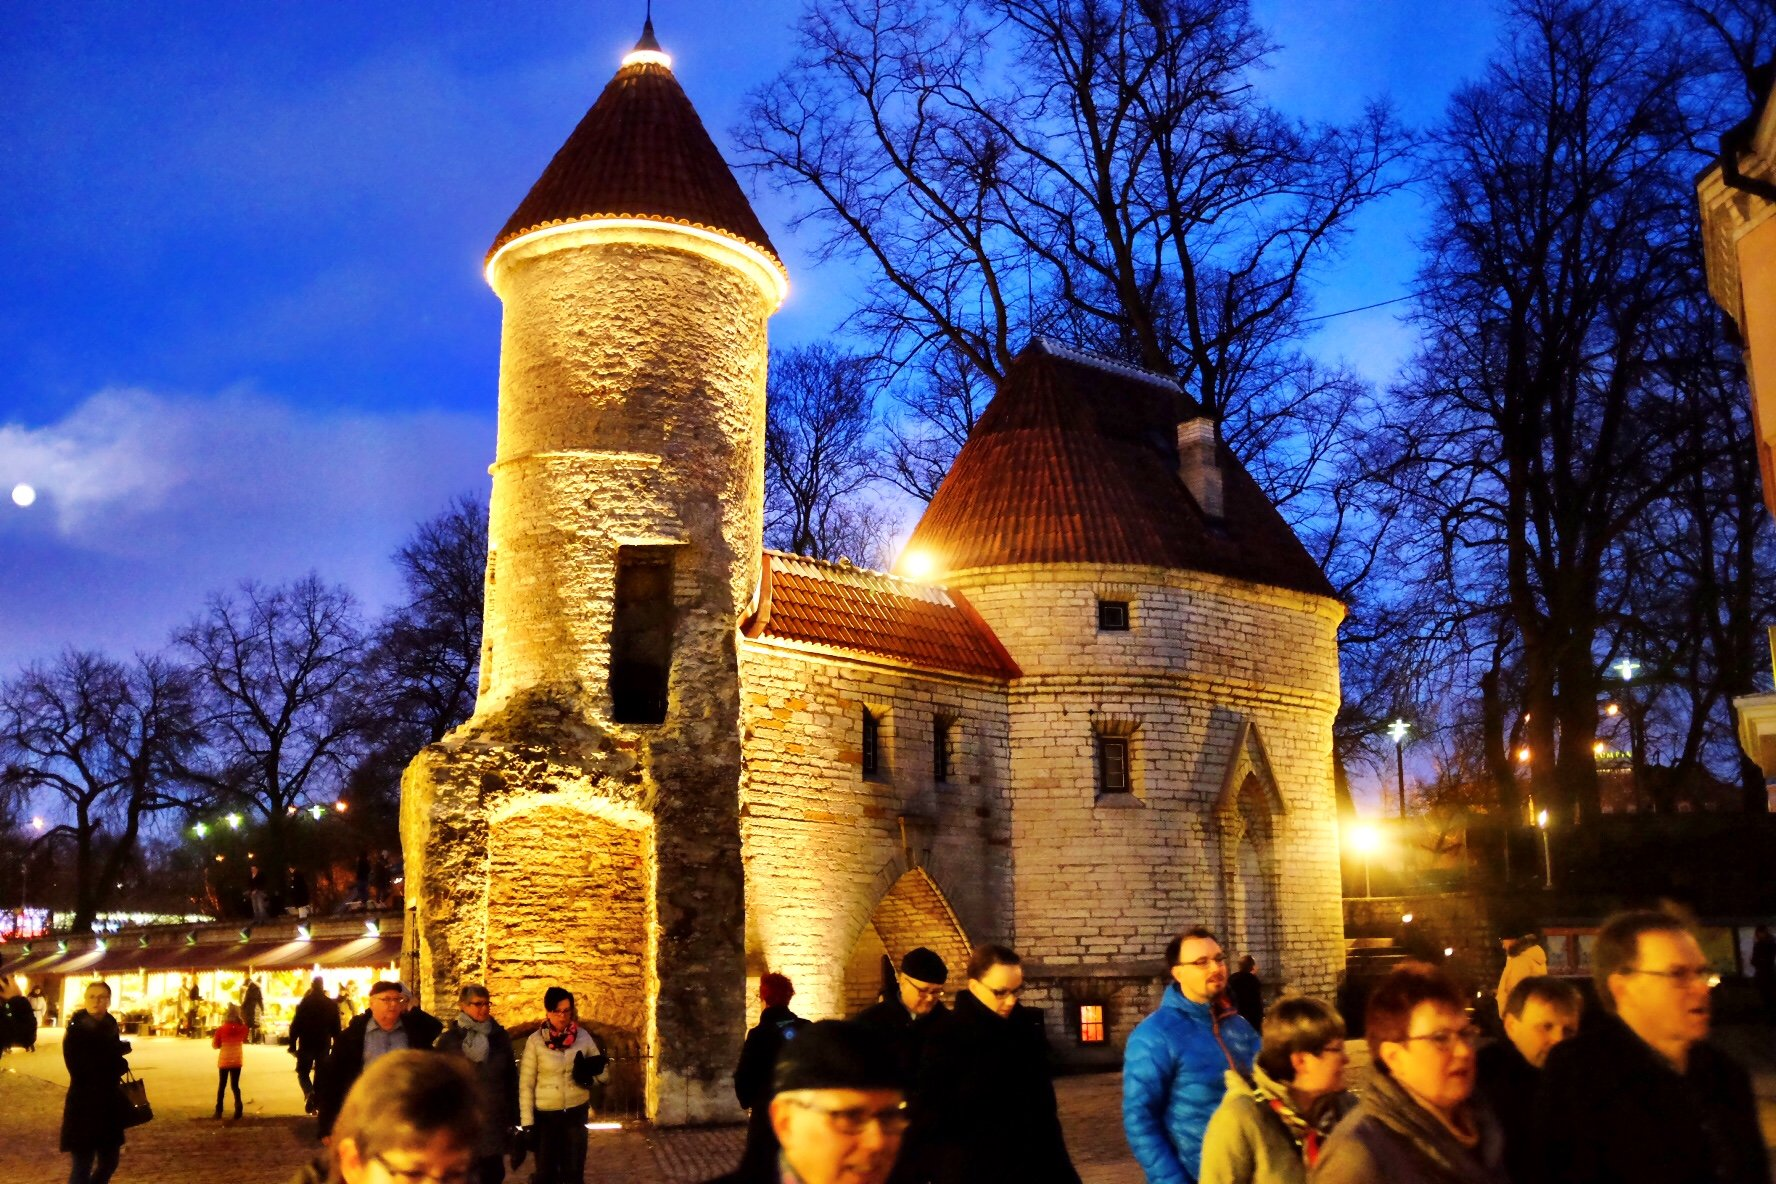 Frontgate of Tallinn at night illuminated with some lights